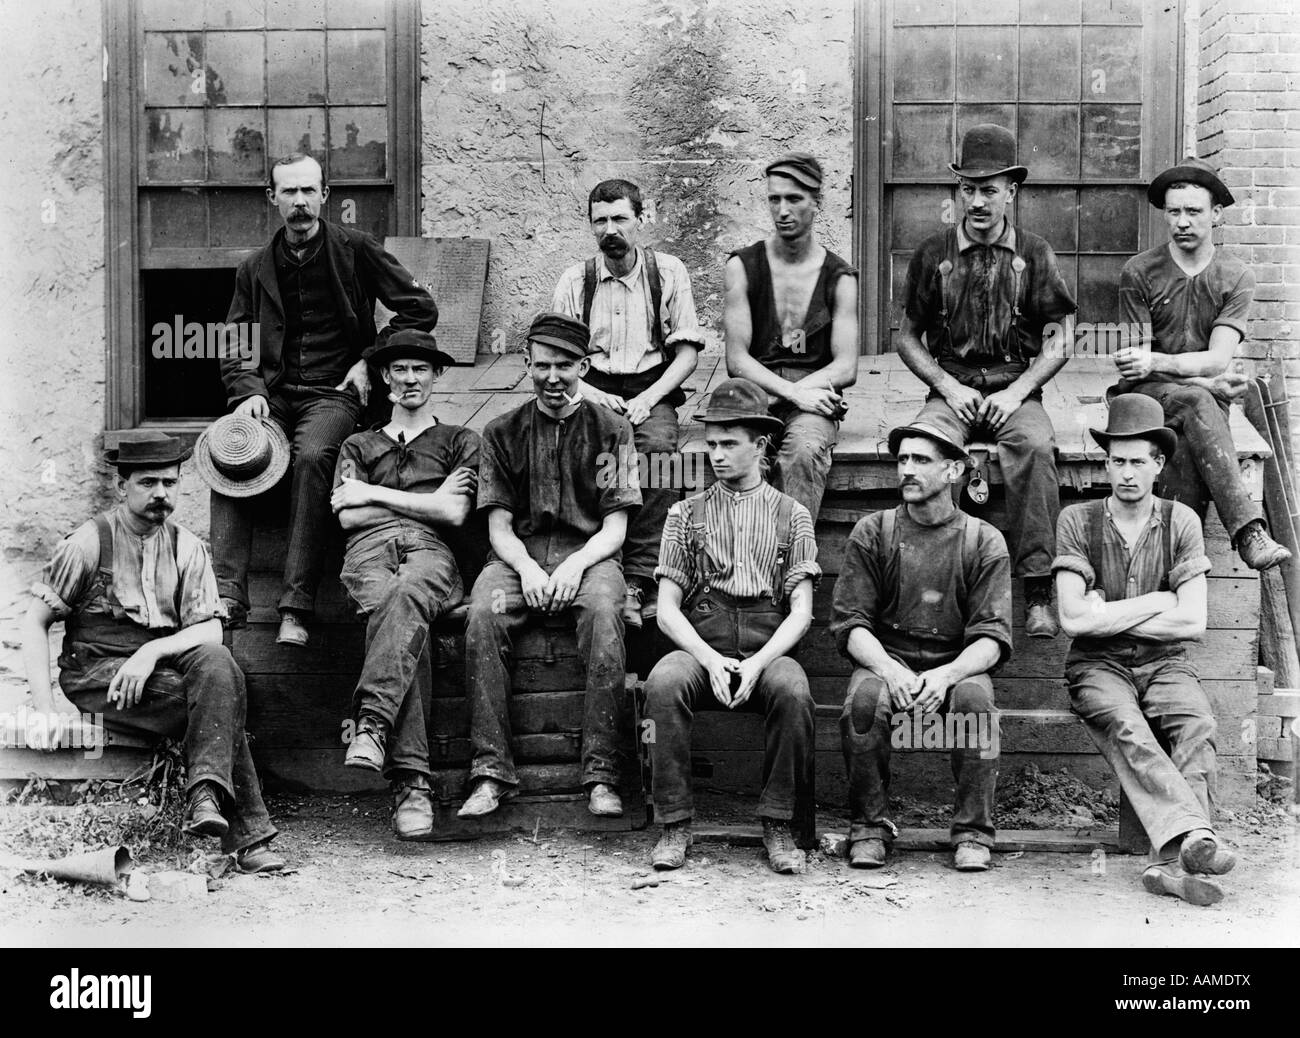 1890s 1900s GROUP OF 11 FACTORY WORKERS SEATED OUTSIDE OF BUILDING - Stock Image